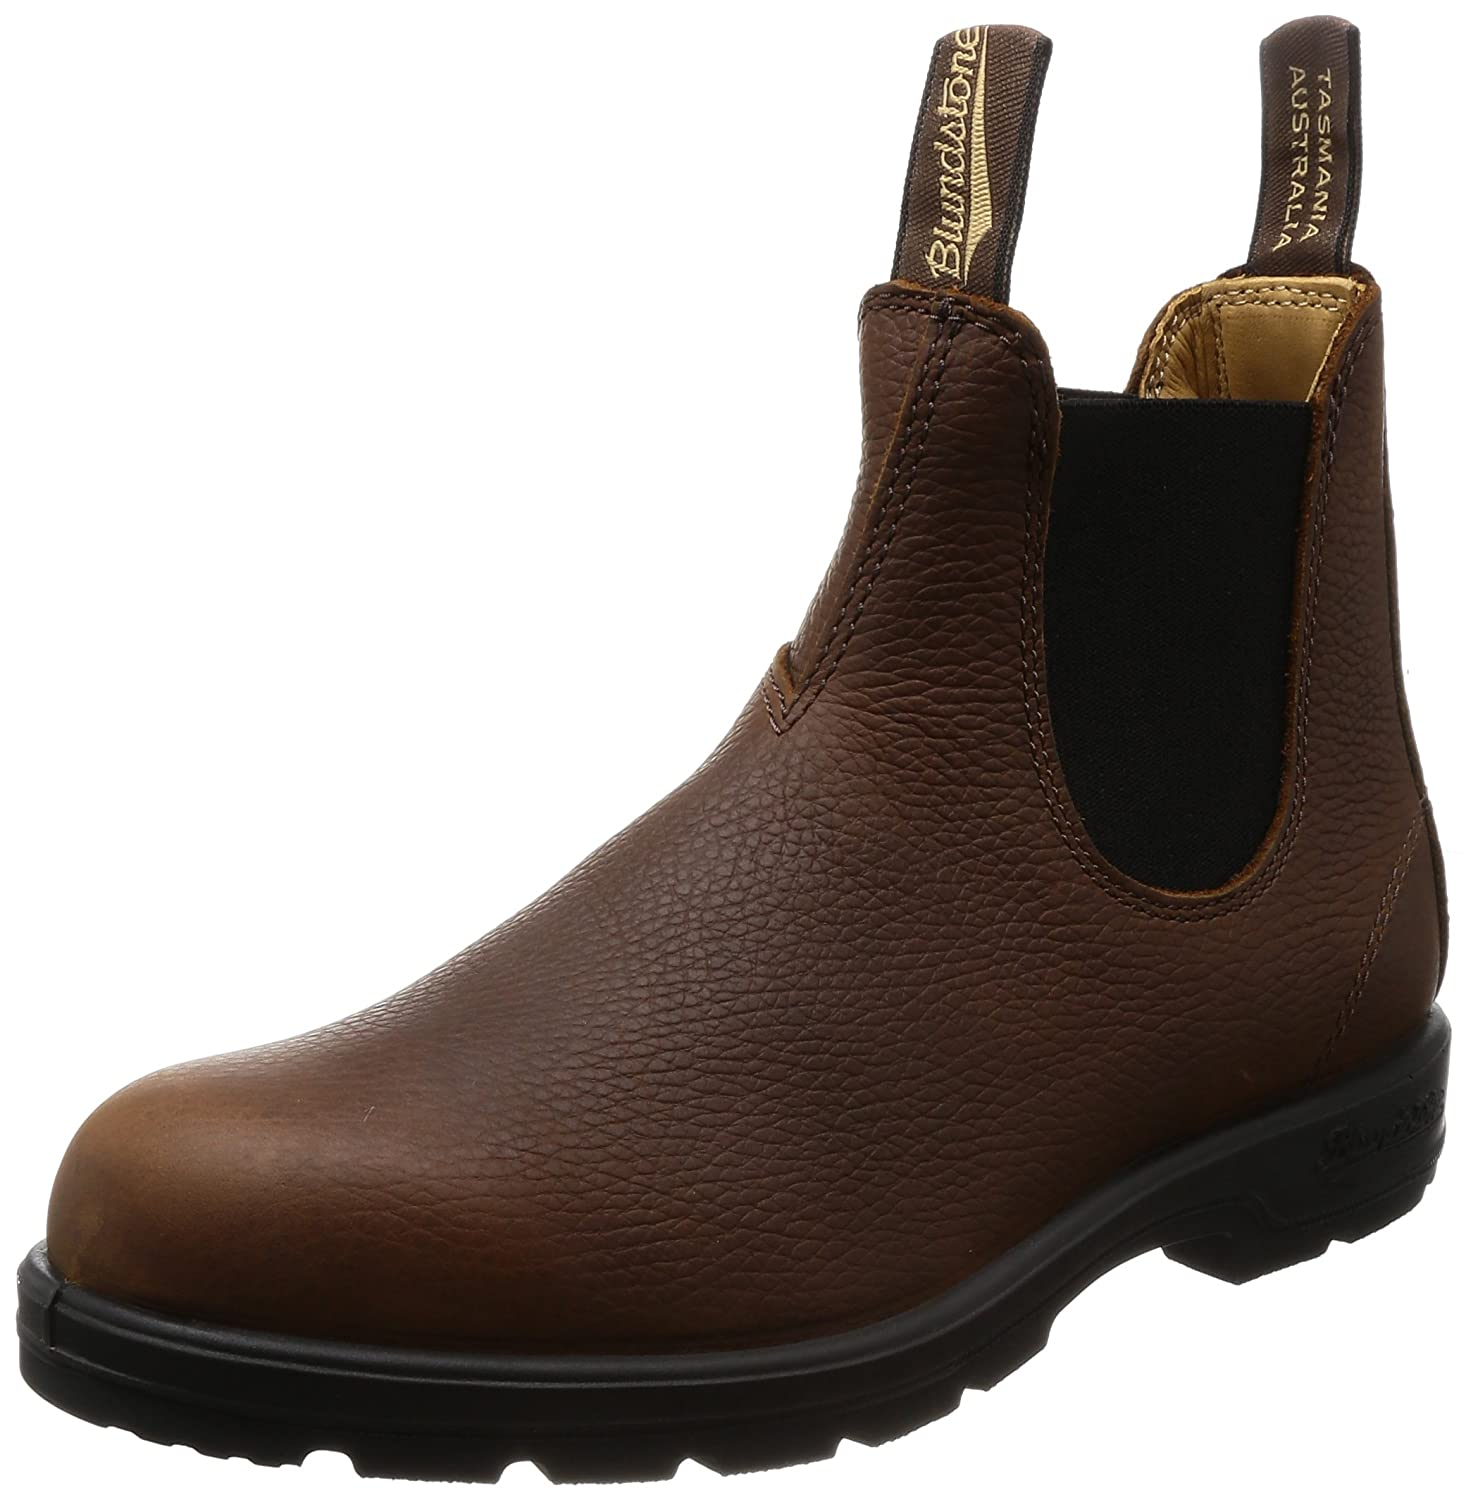 TALLA 41 EU. Blundstone Classic Leather 1445, Botas Chelsea para Mujer